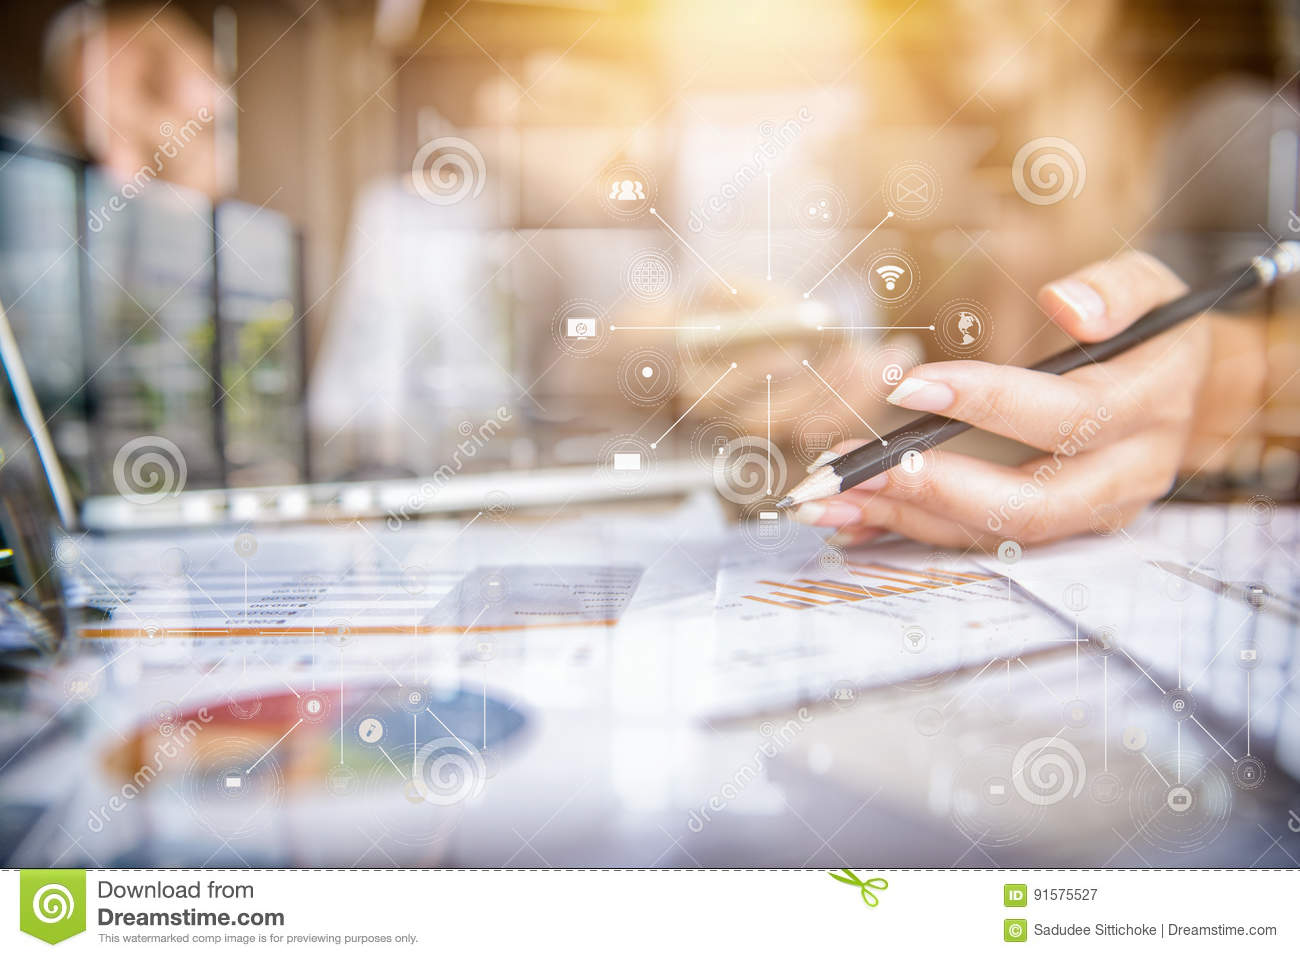 Woman Hand Holding A Pen On Paper Stock Image - Image of